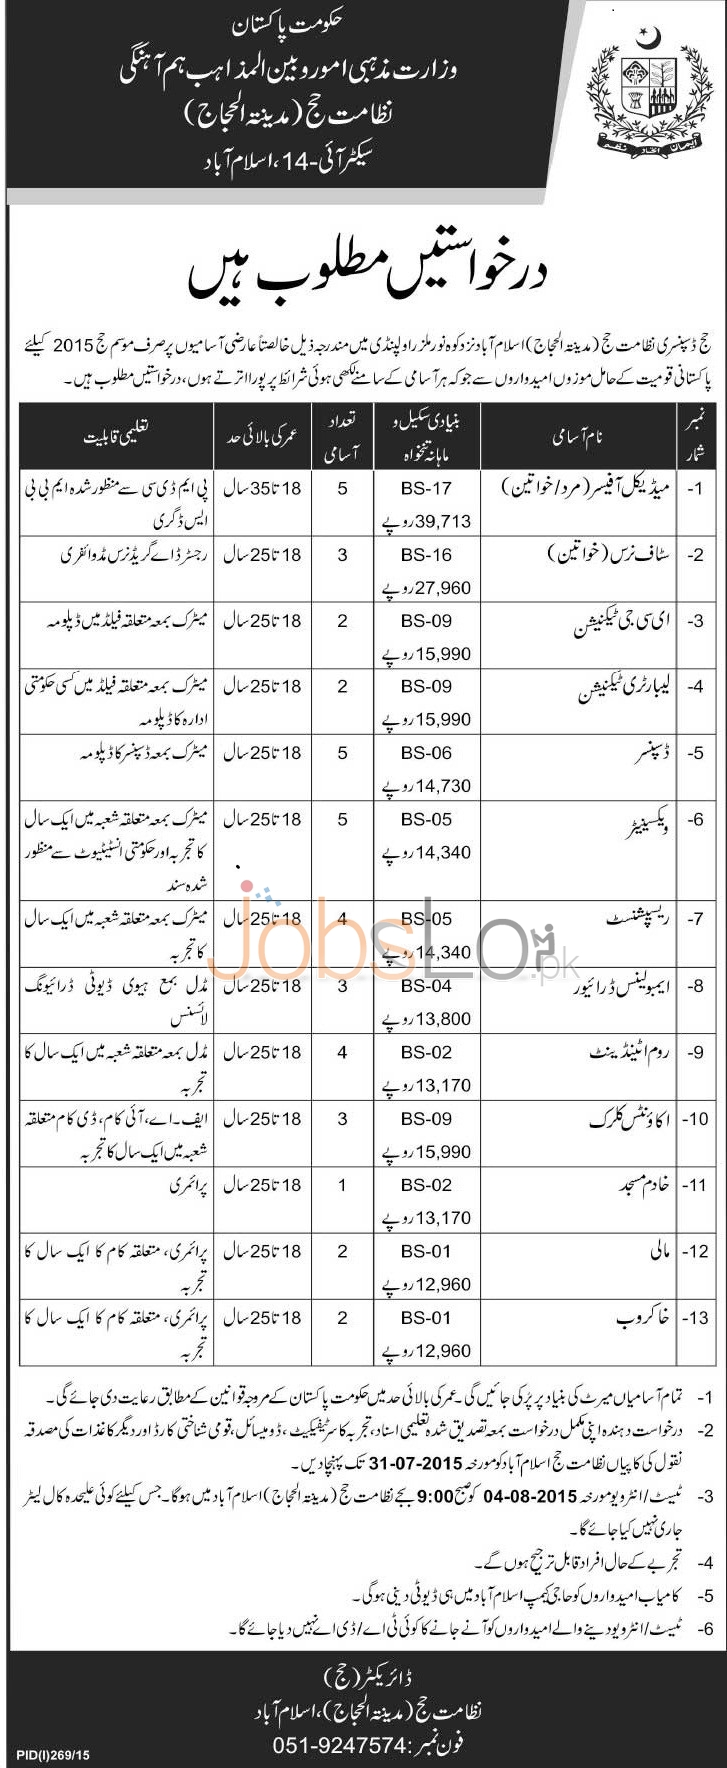 Ministry of Religious Affairs Islamabad Jobs 2015 Federal